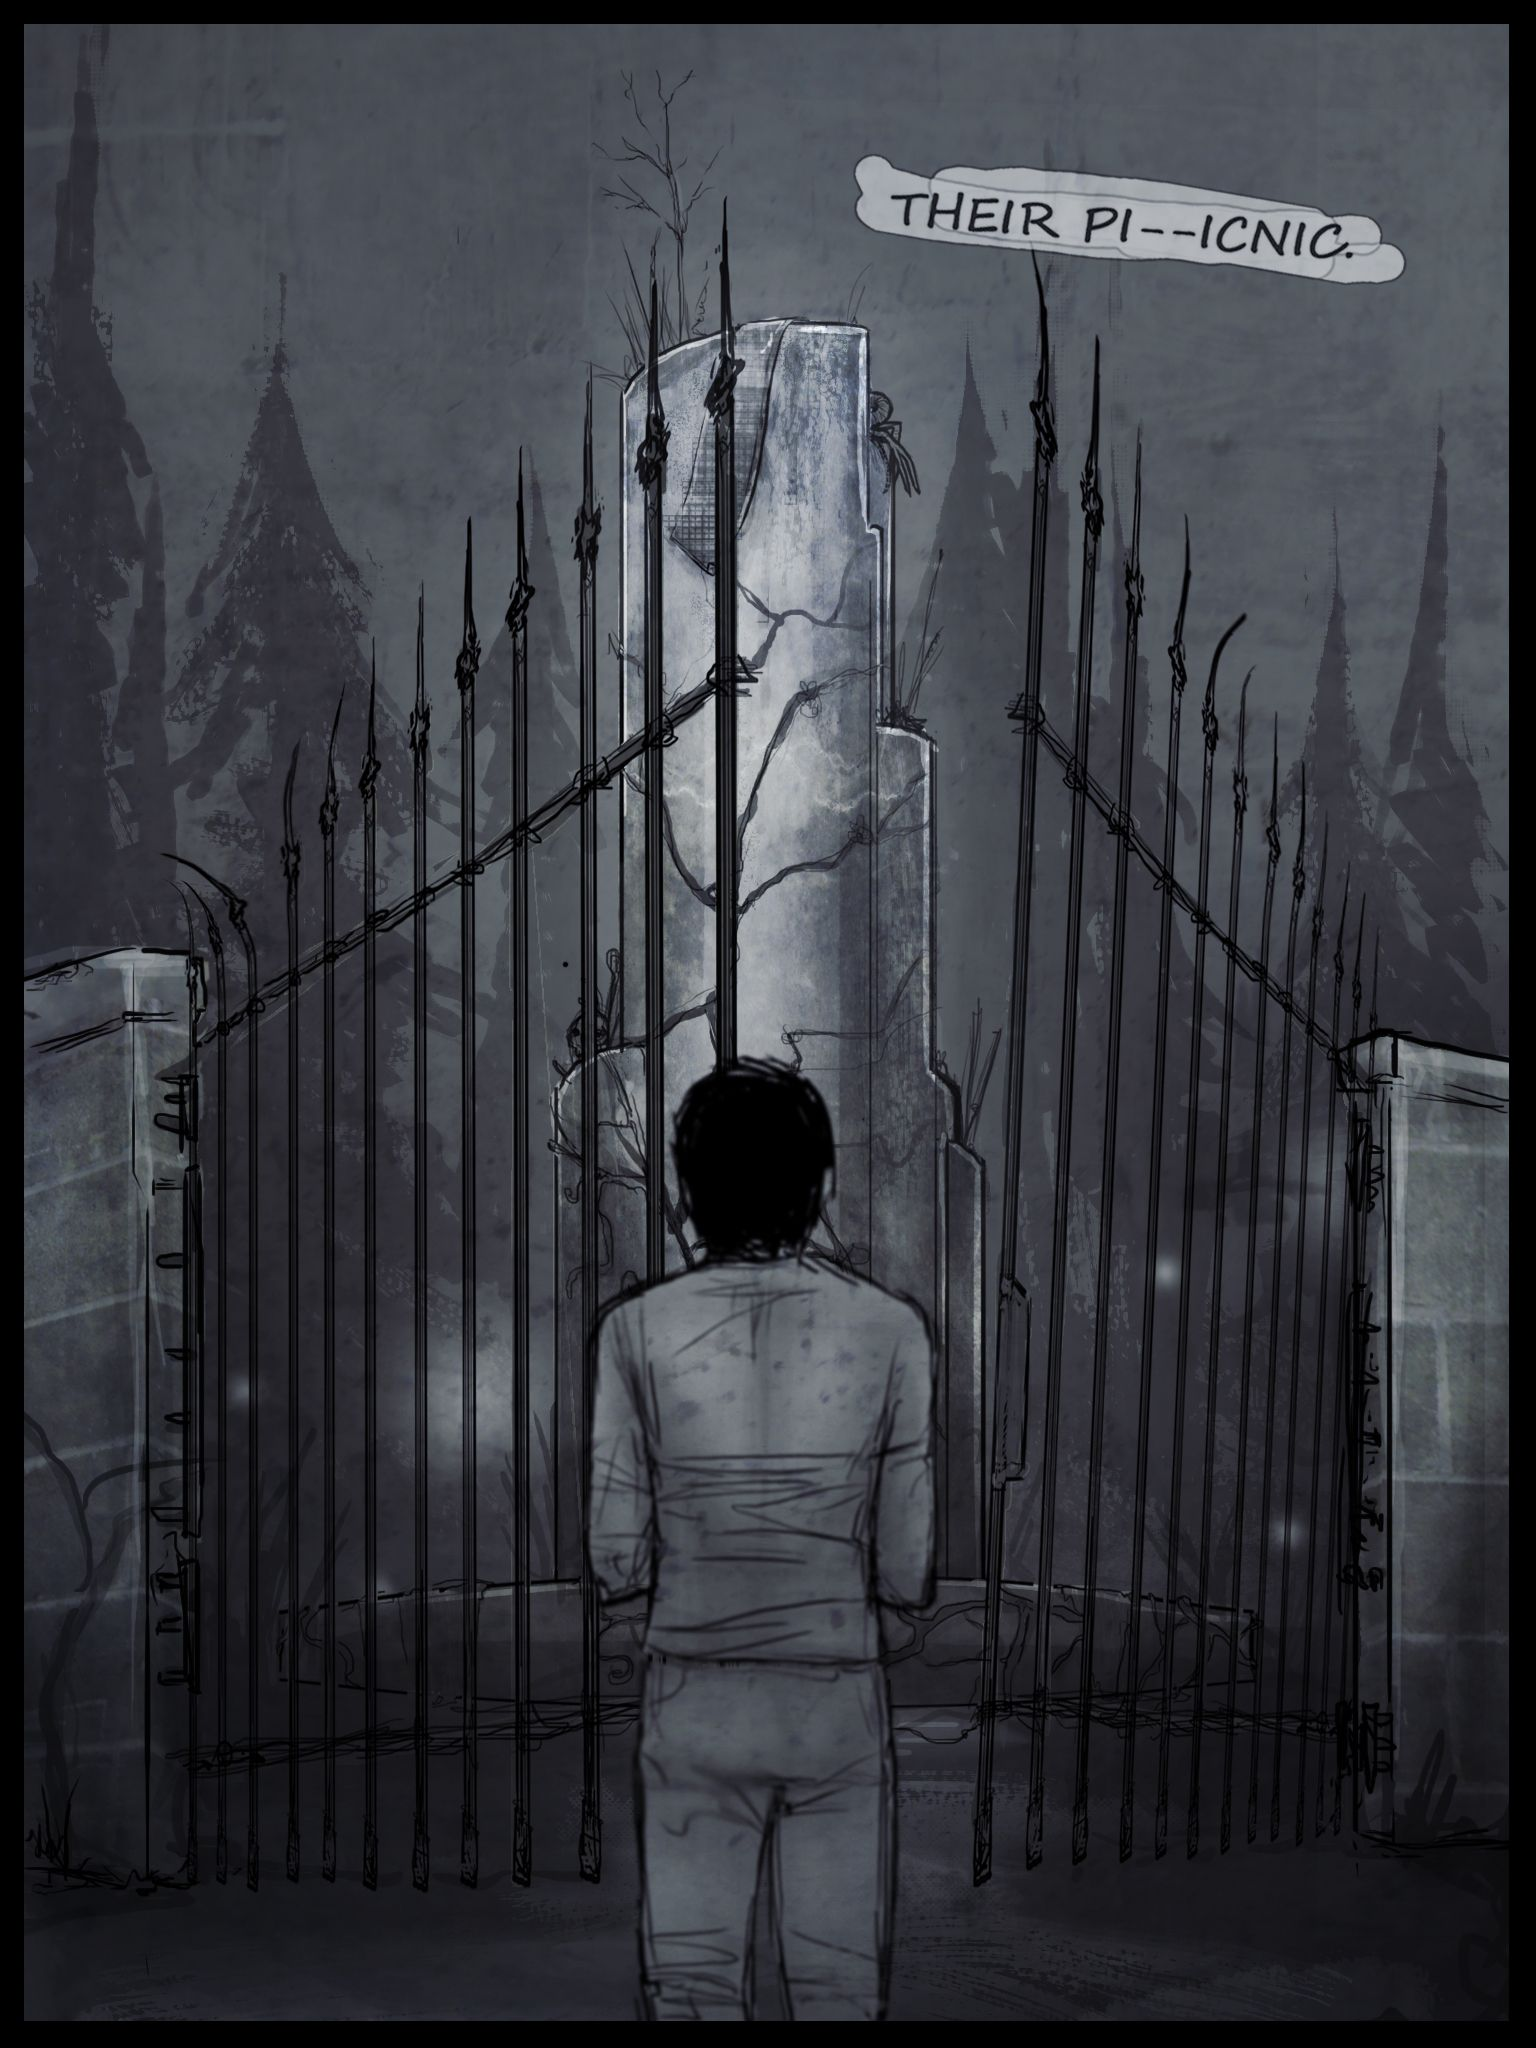 """Don't forget! If you like comics, make sure keep up with our comic """"Kansas"""", it's pretty awesome!  David Garland wakes from an uneasy sleep into a full-blown nightmare. http://www.newgrounds.com/portal/view/634402  #comic #comics #comicbook #comicbooks #graphicnovel"""